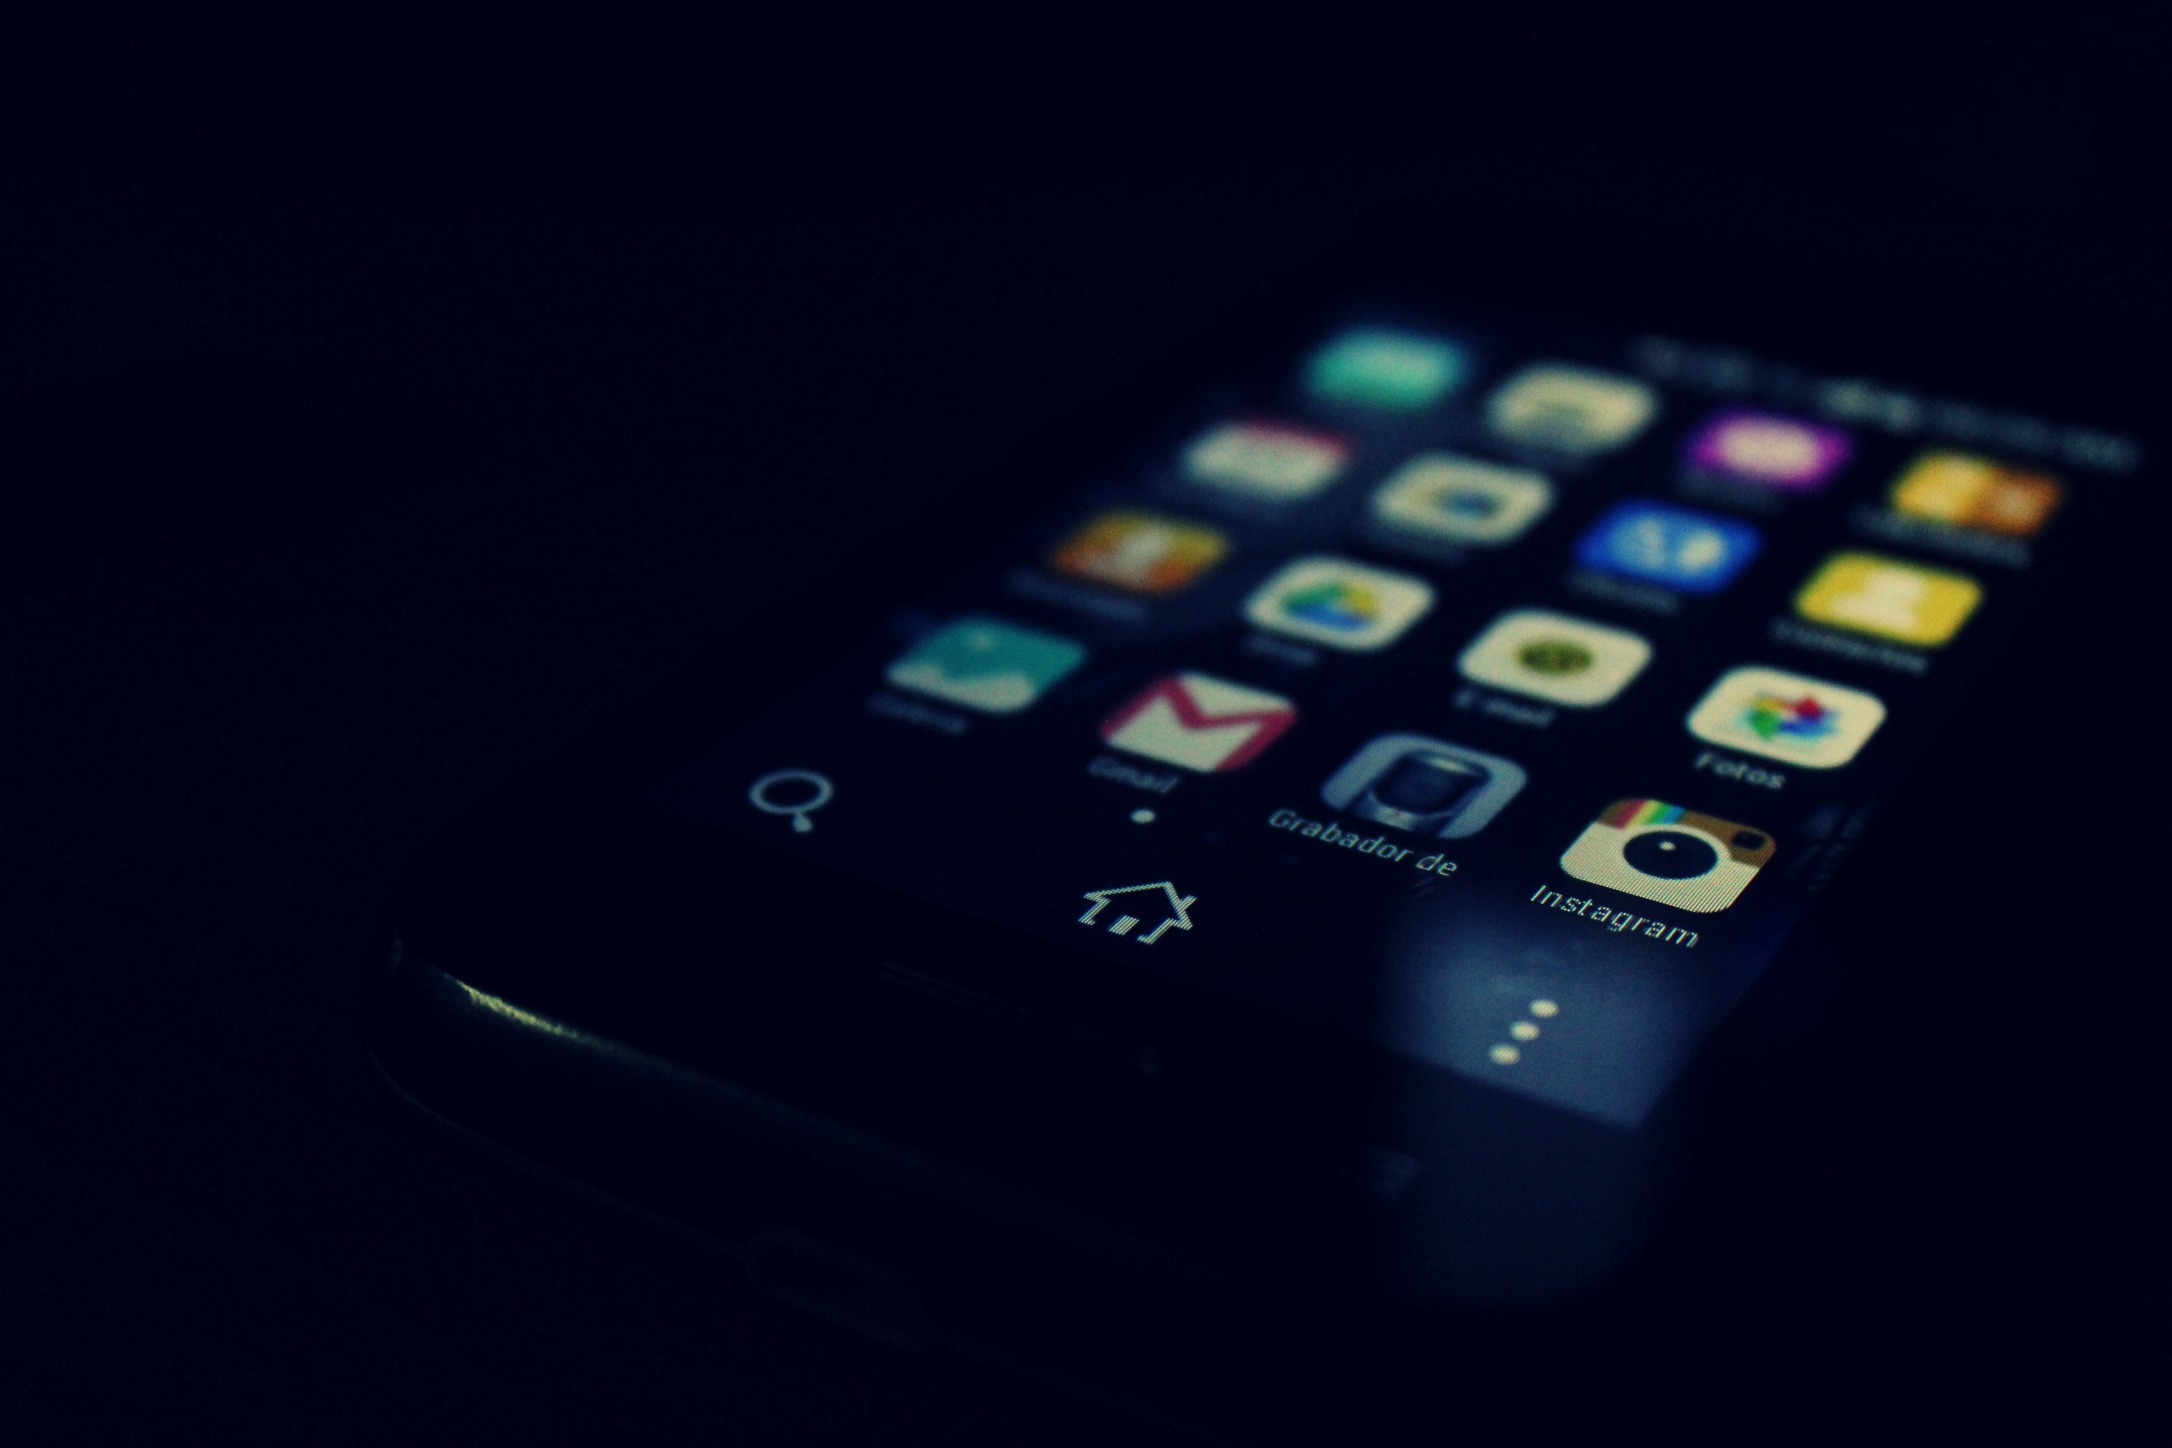 Black Wallpaper For Iphone 7 Black Android Smartphone Showing Instagram And Gmail